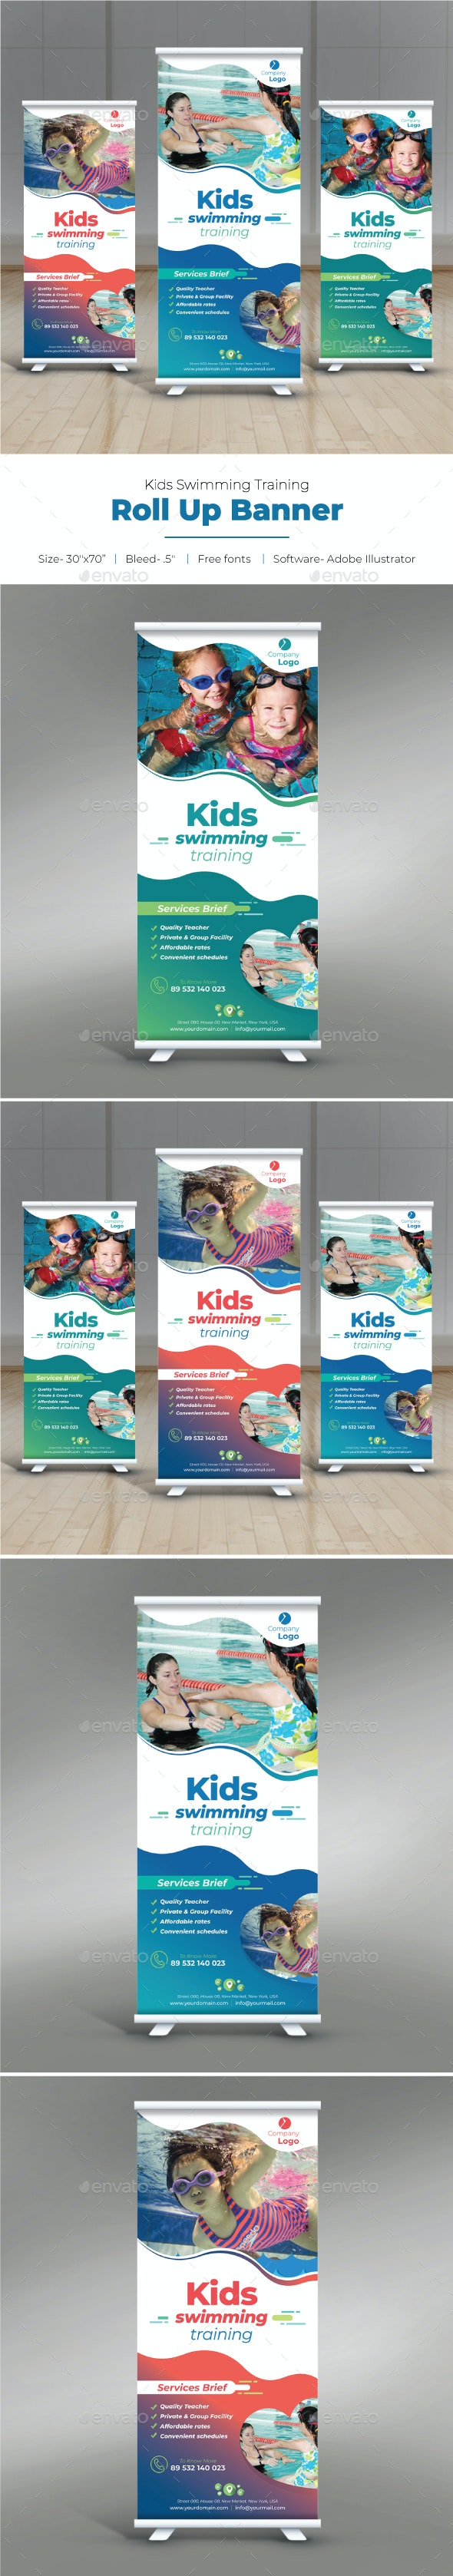 Kids Swimming Training Roll Up Banner - Signage Print Templates